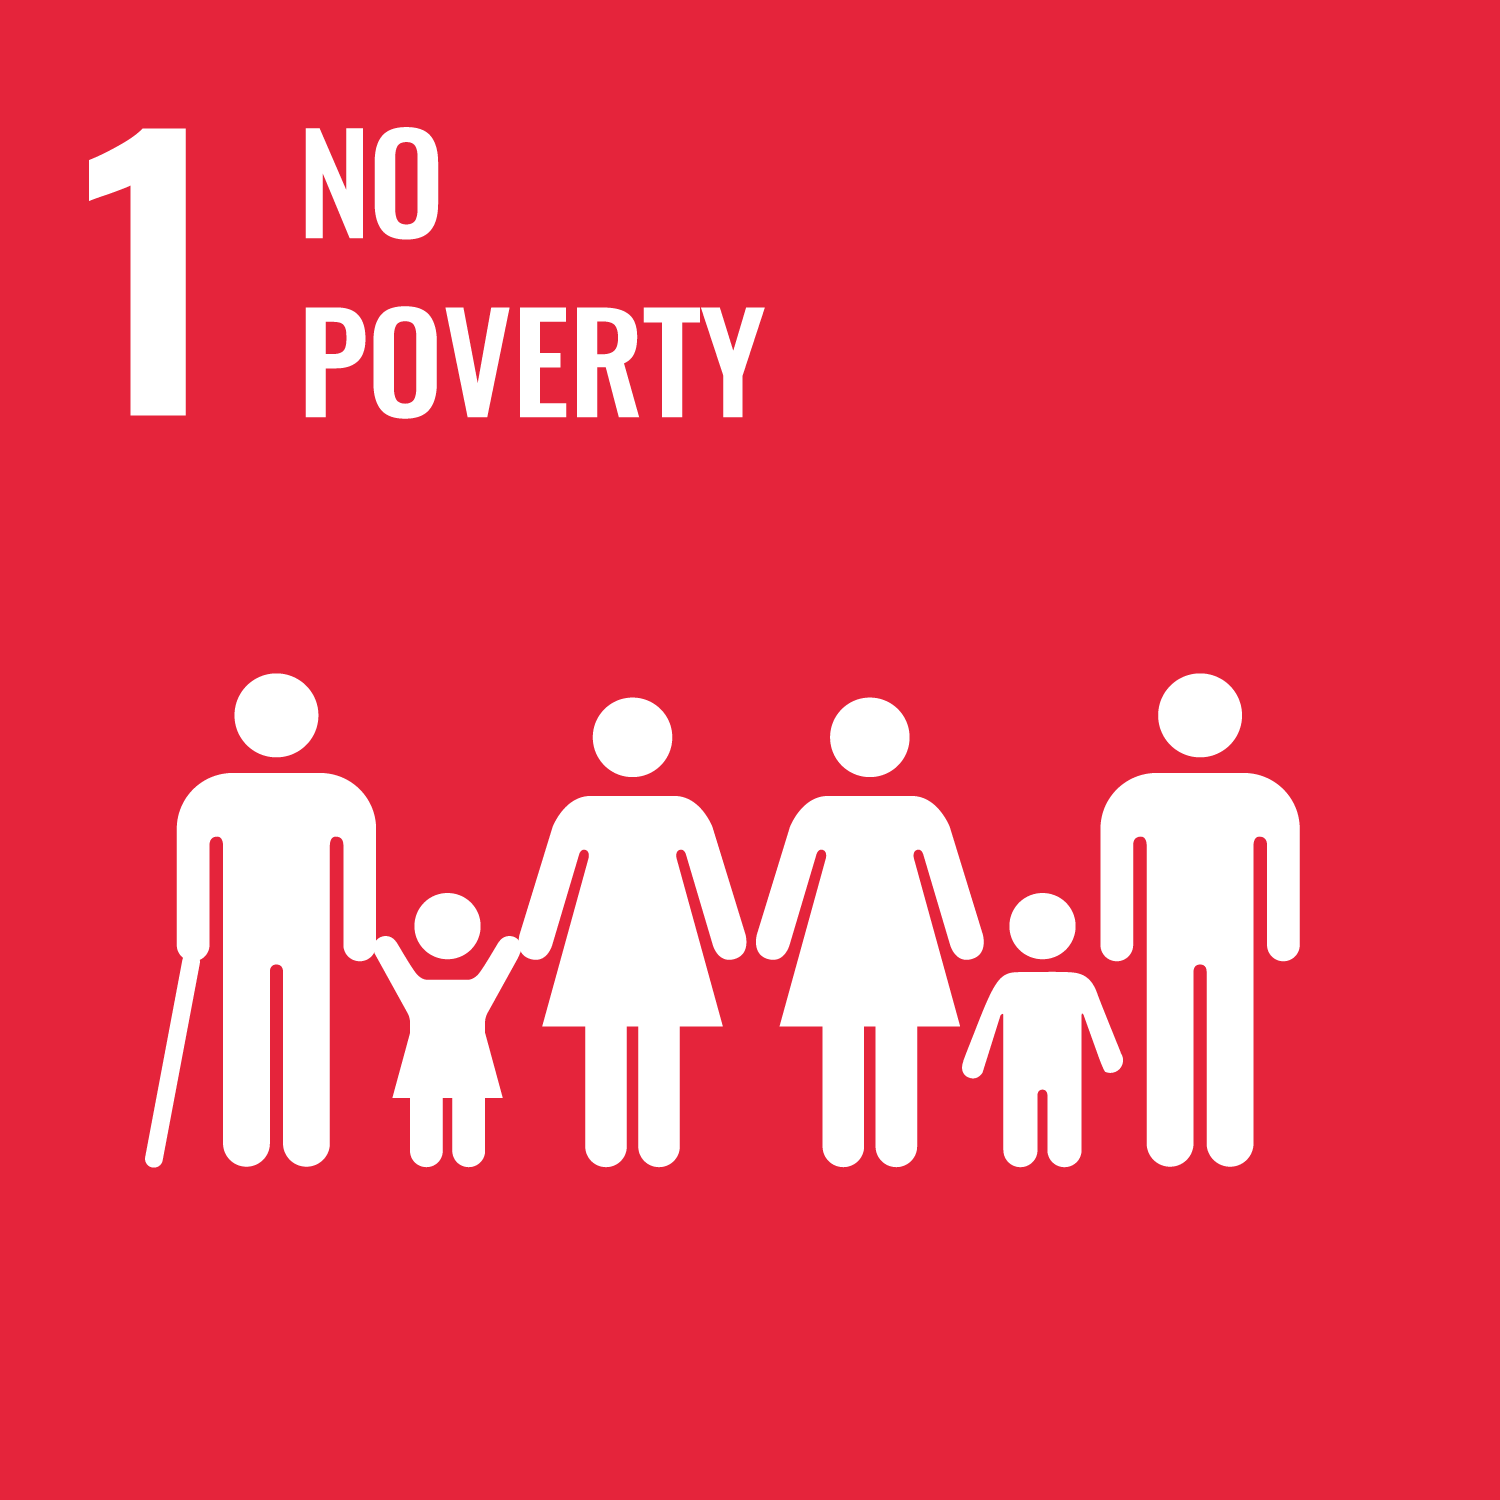 Goal number 1 of the SDGs: No Poverty